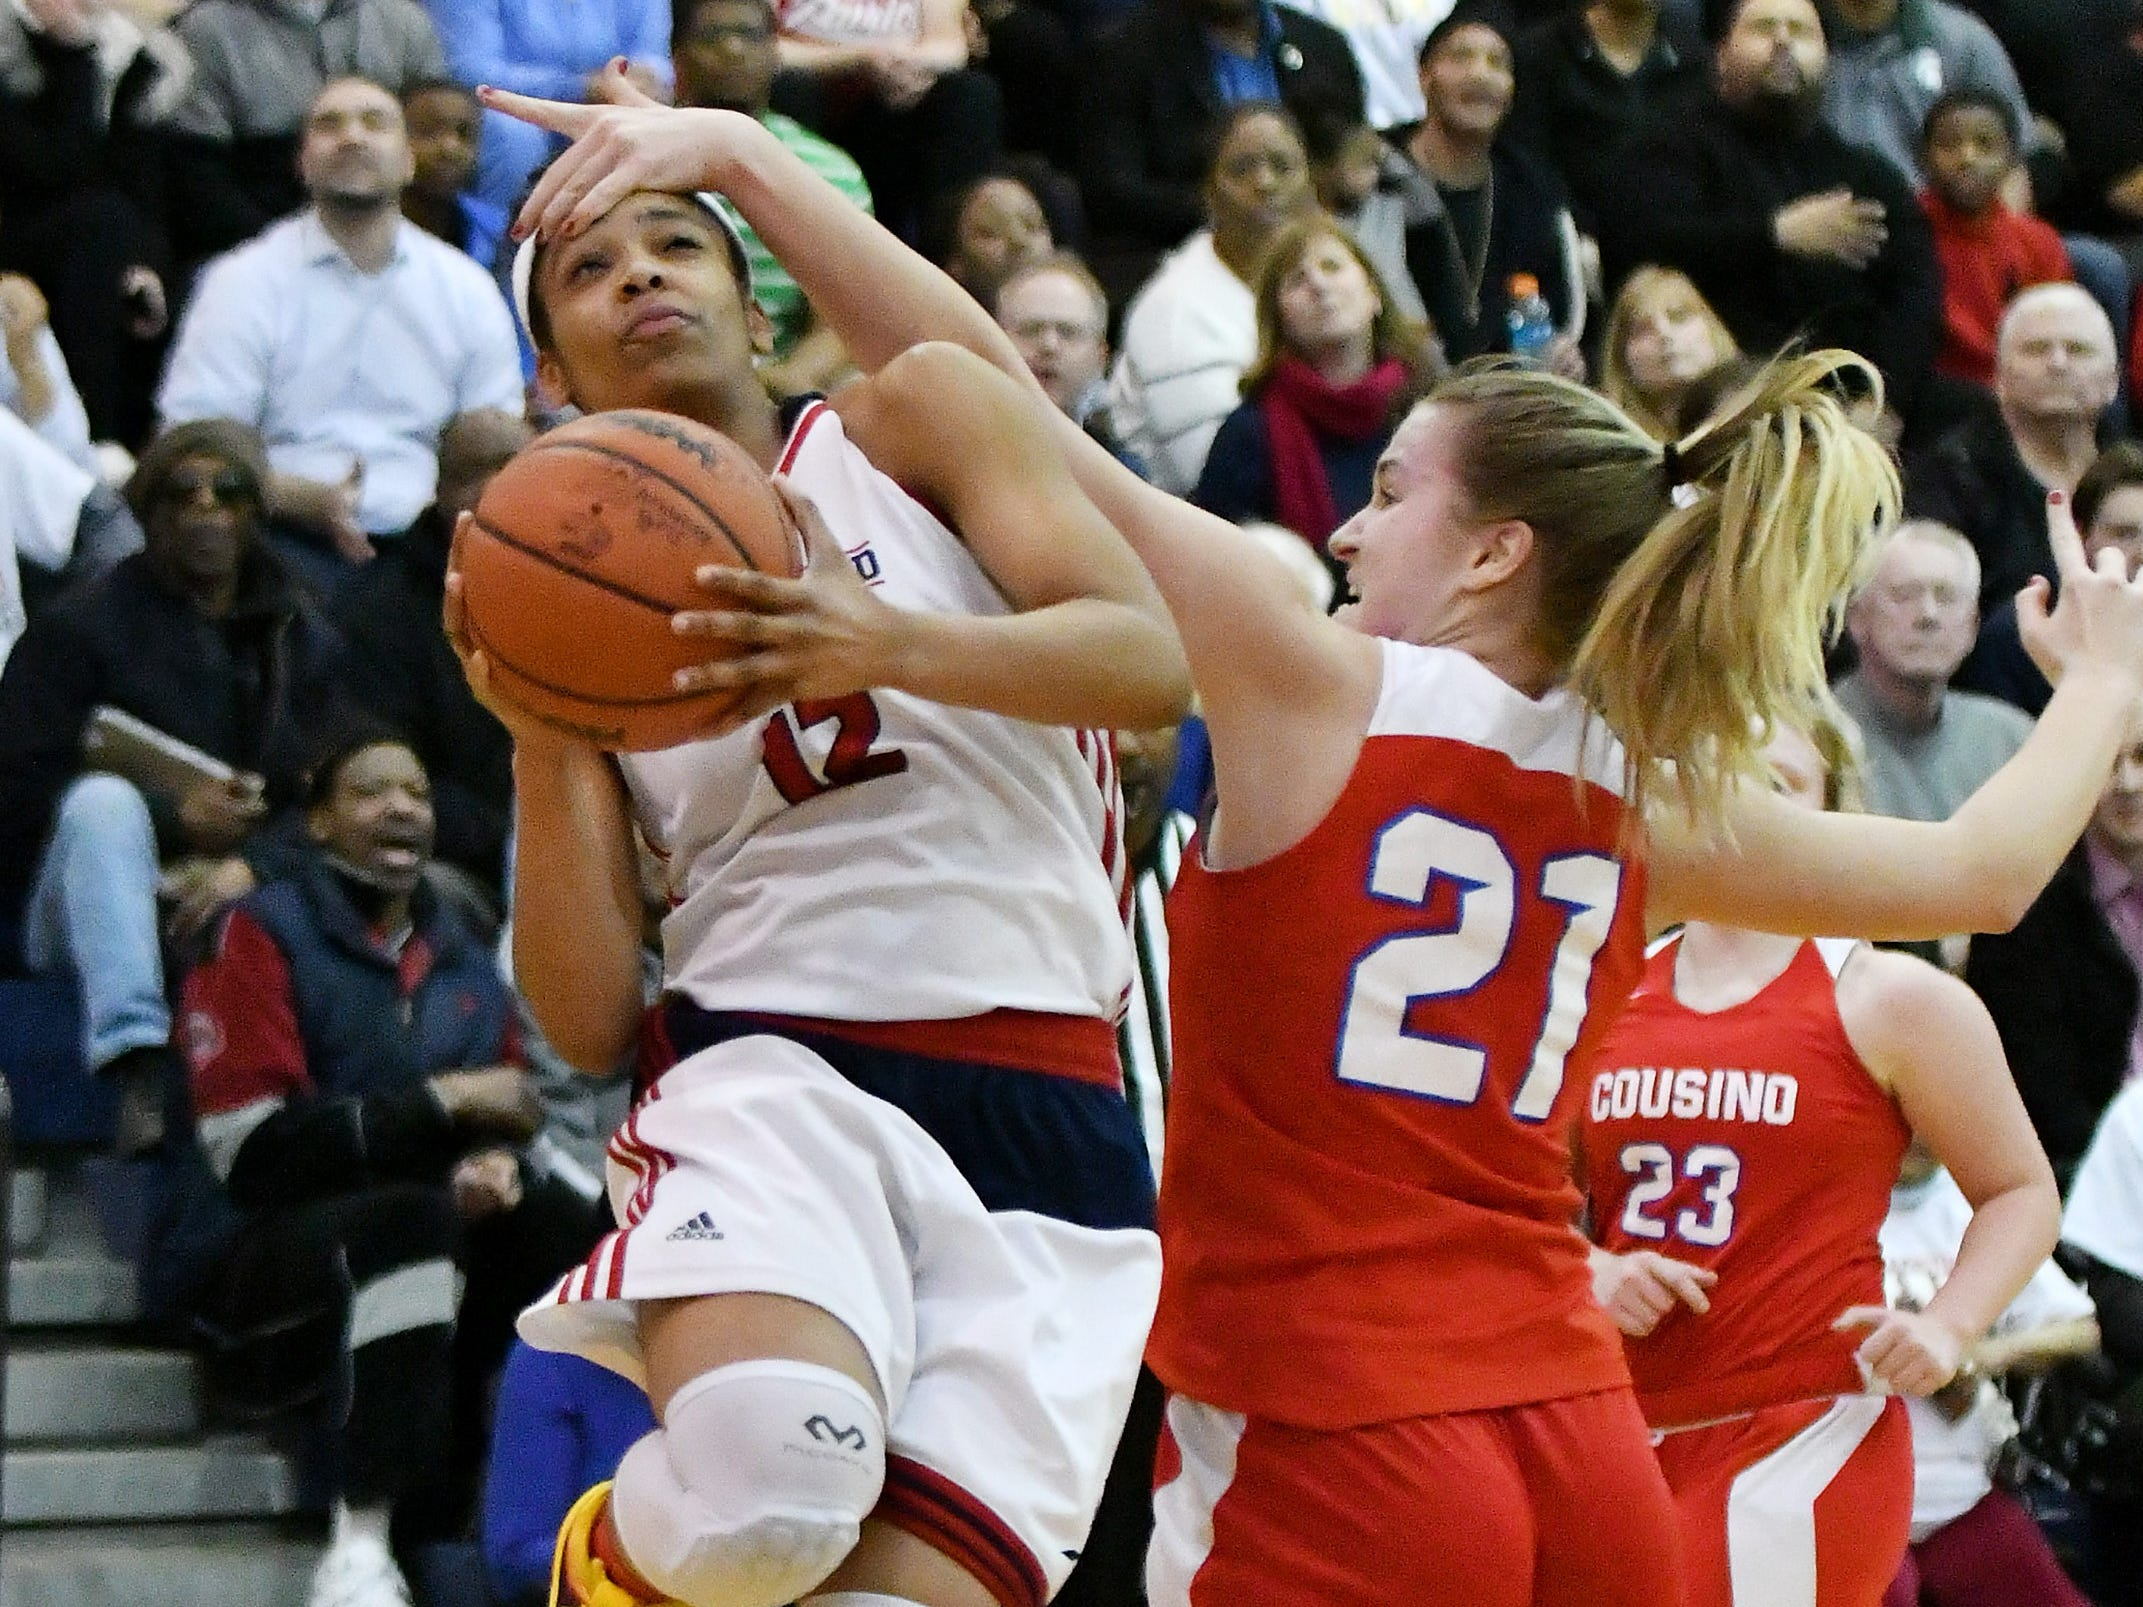 Warren Cousino's Olivia Jolliffe fouls Southfield A&T's Cheyenne McEvans in the 67-30 Southfield A&T victory in the regional semifinals in Southfield, Mich. on March 11, 2019.